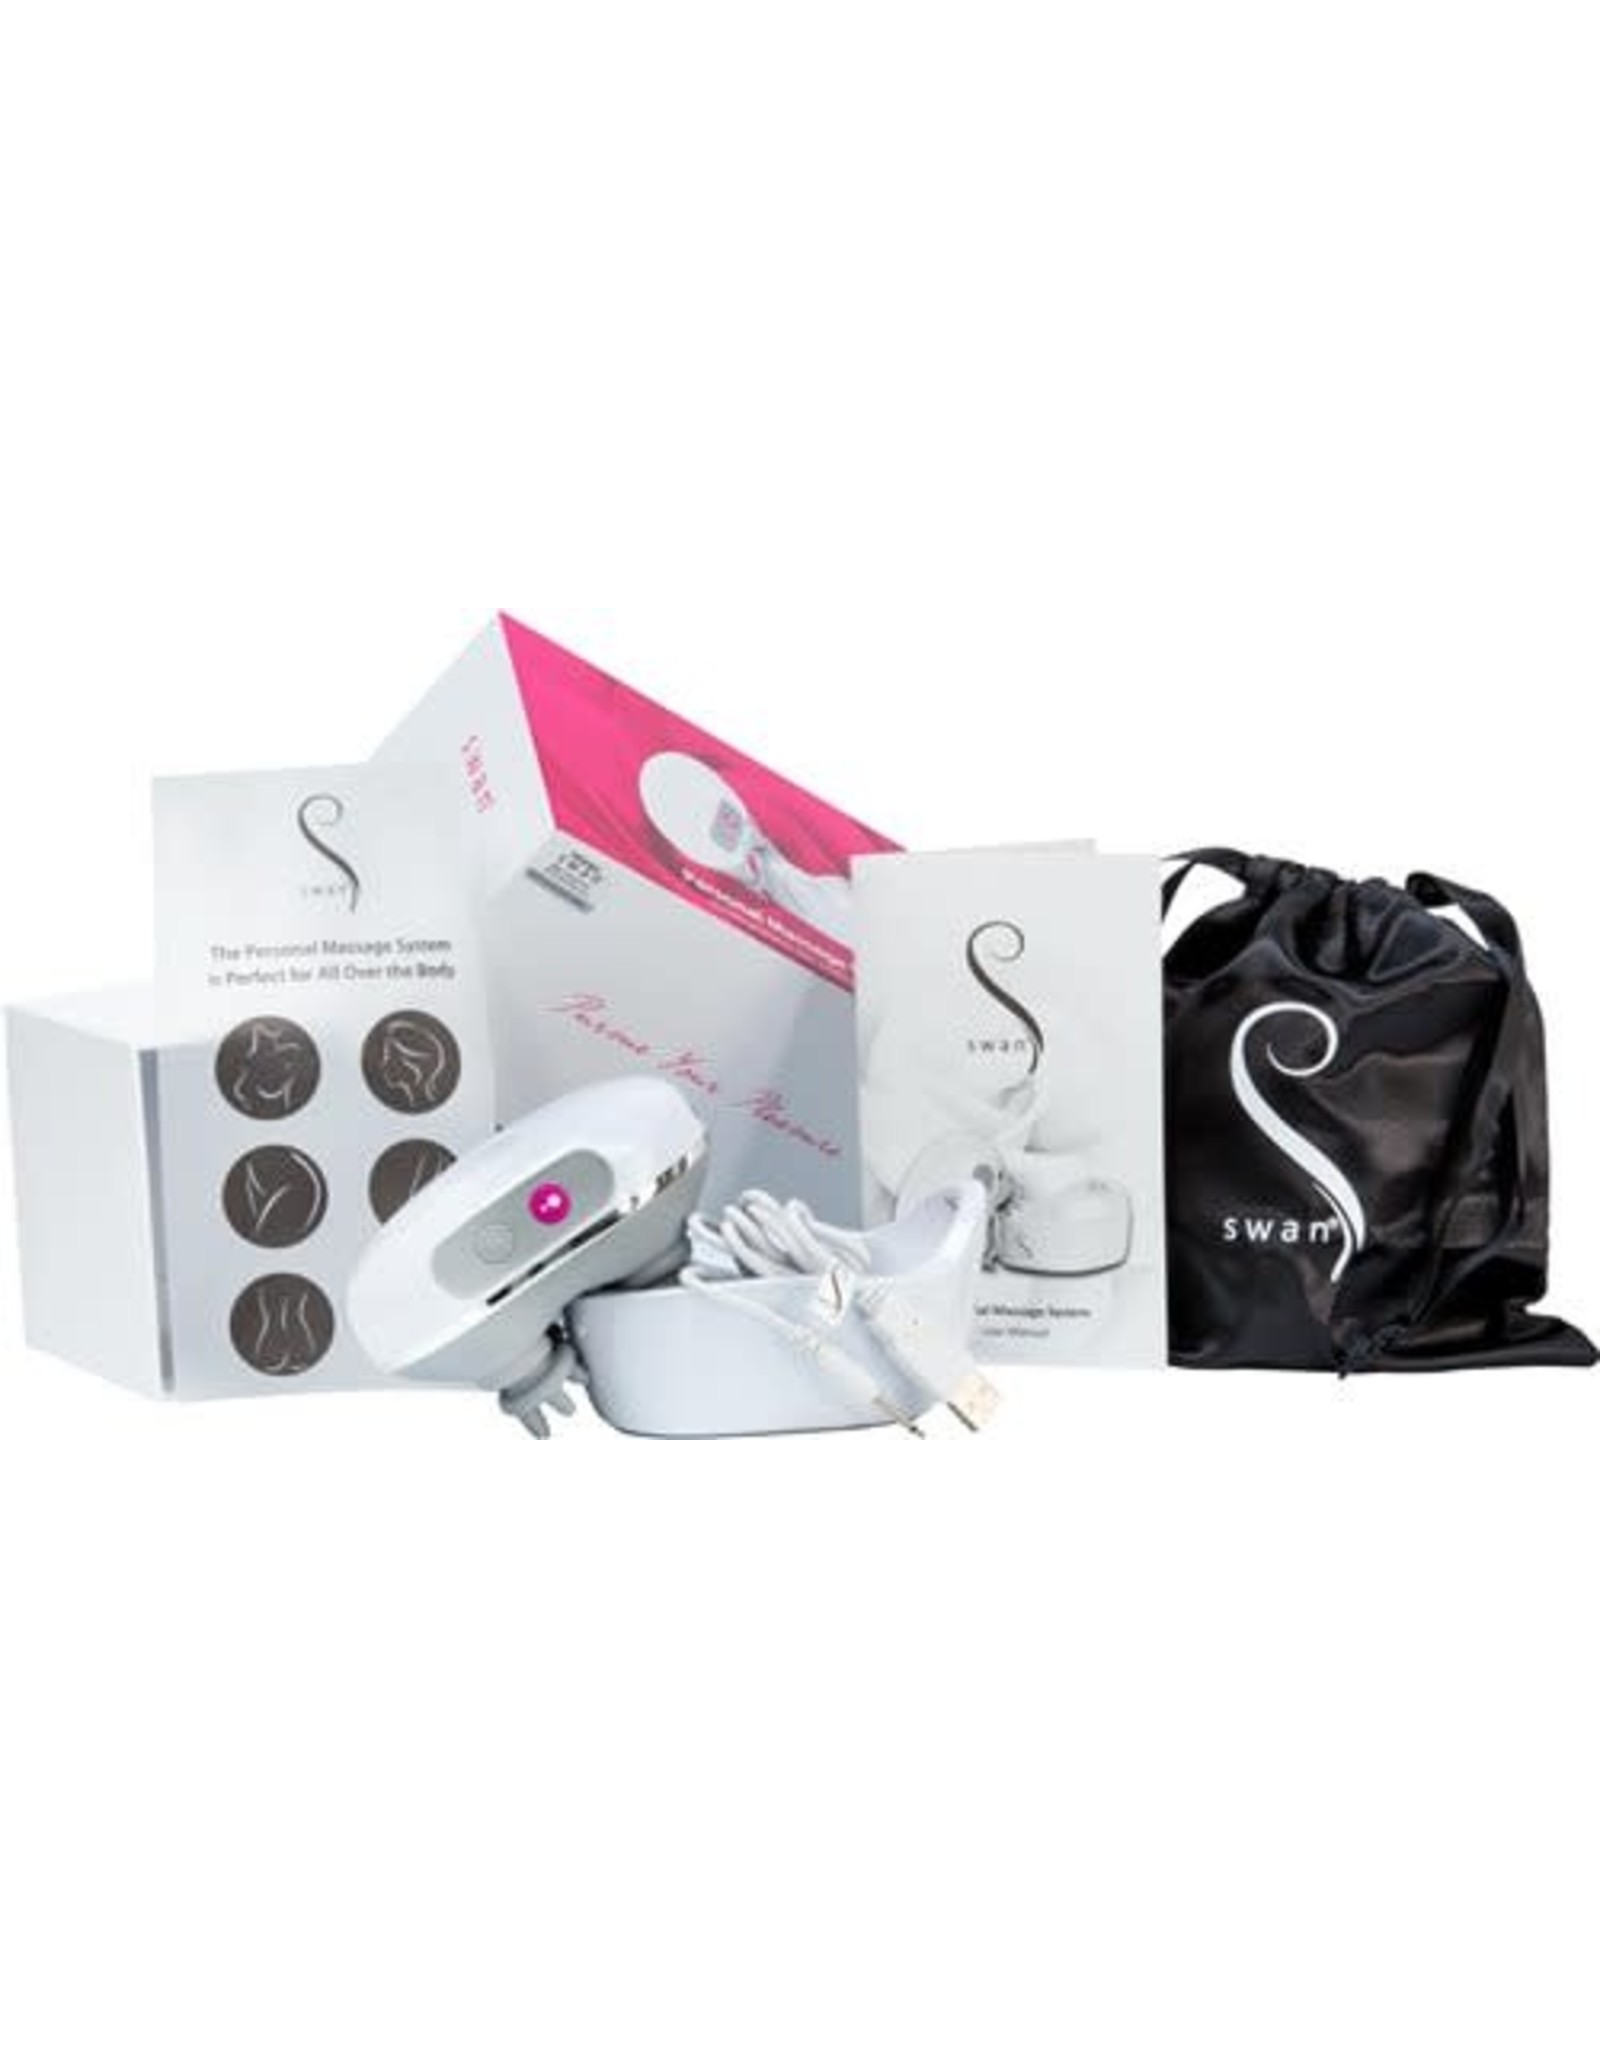 Swan Swan Personal Massage System with USB Charging Cord